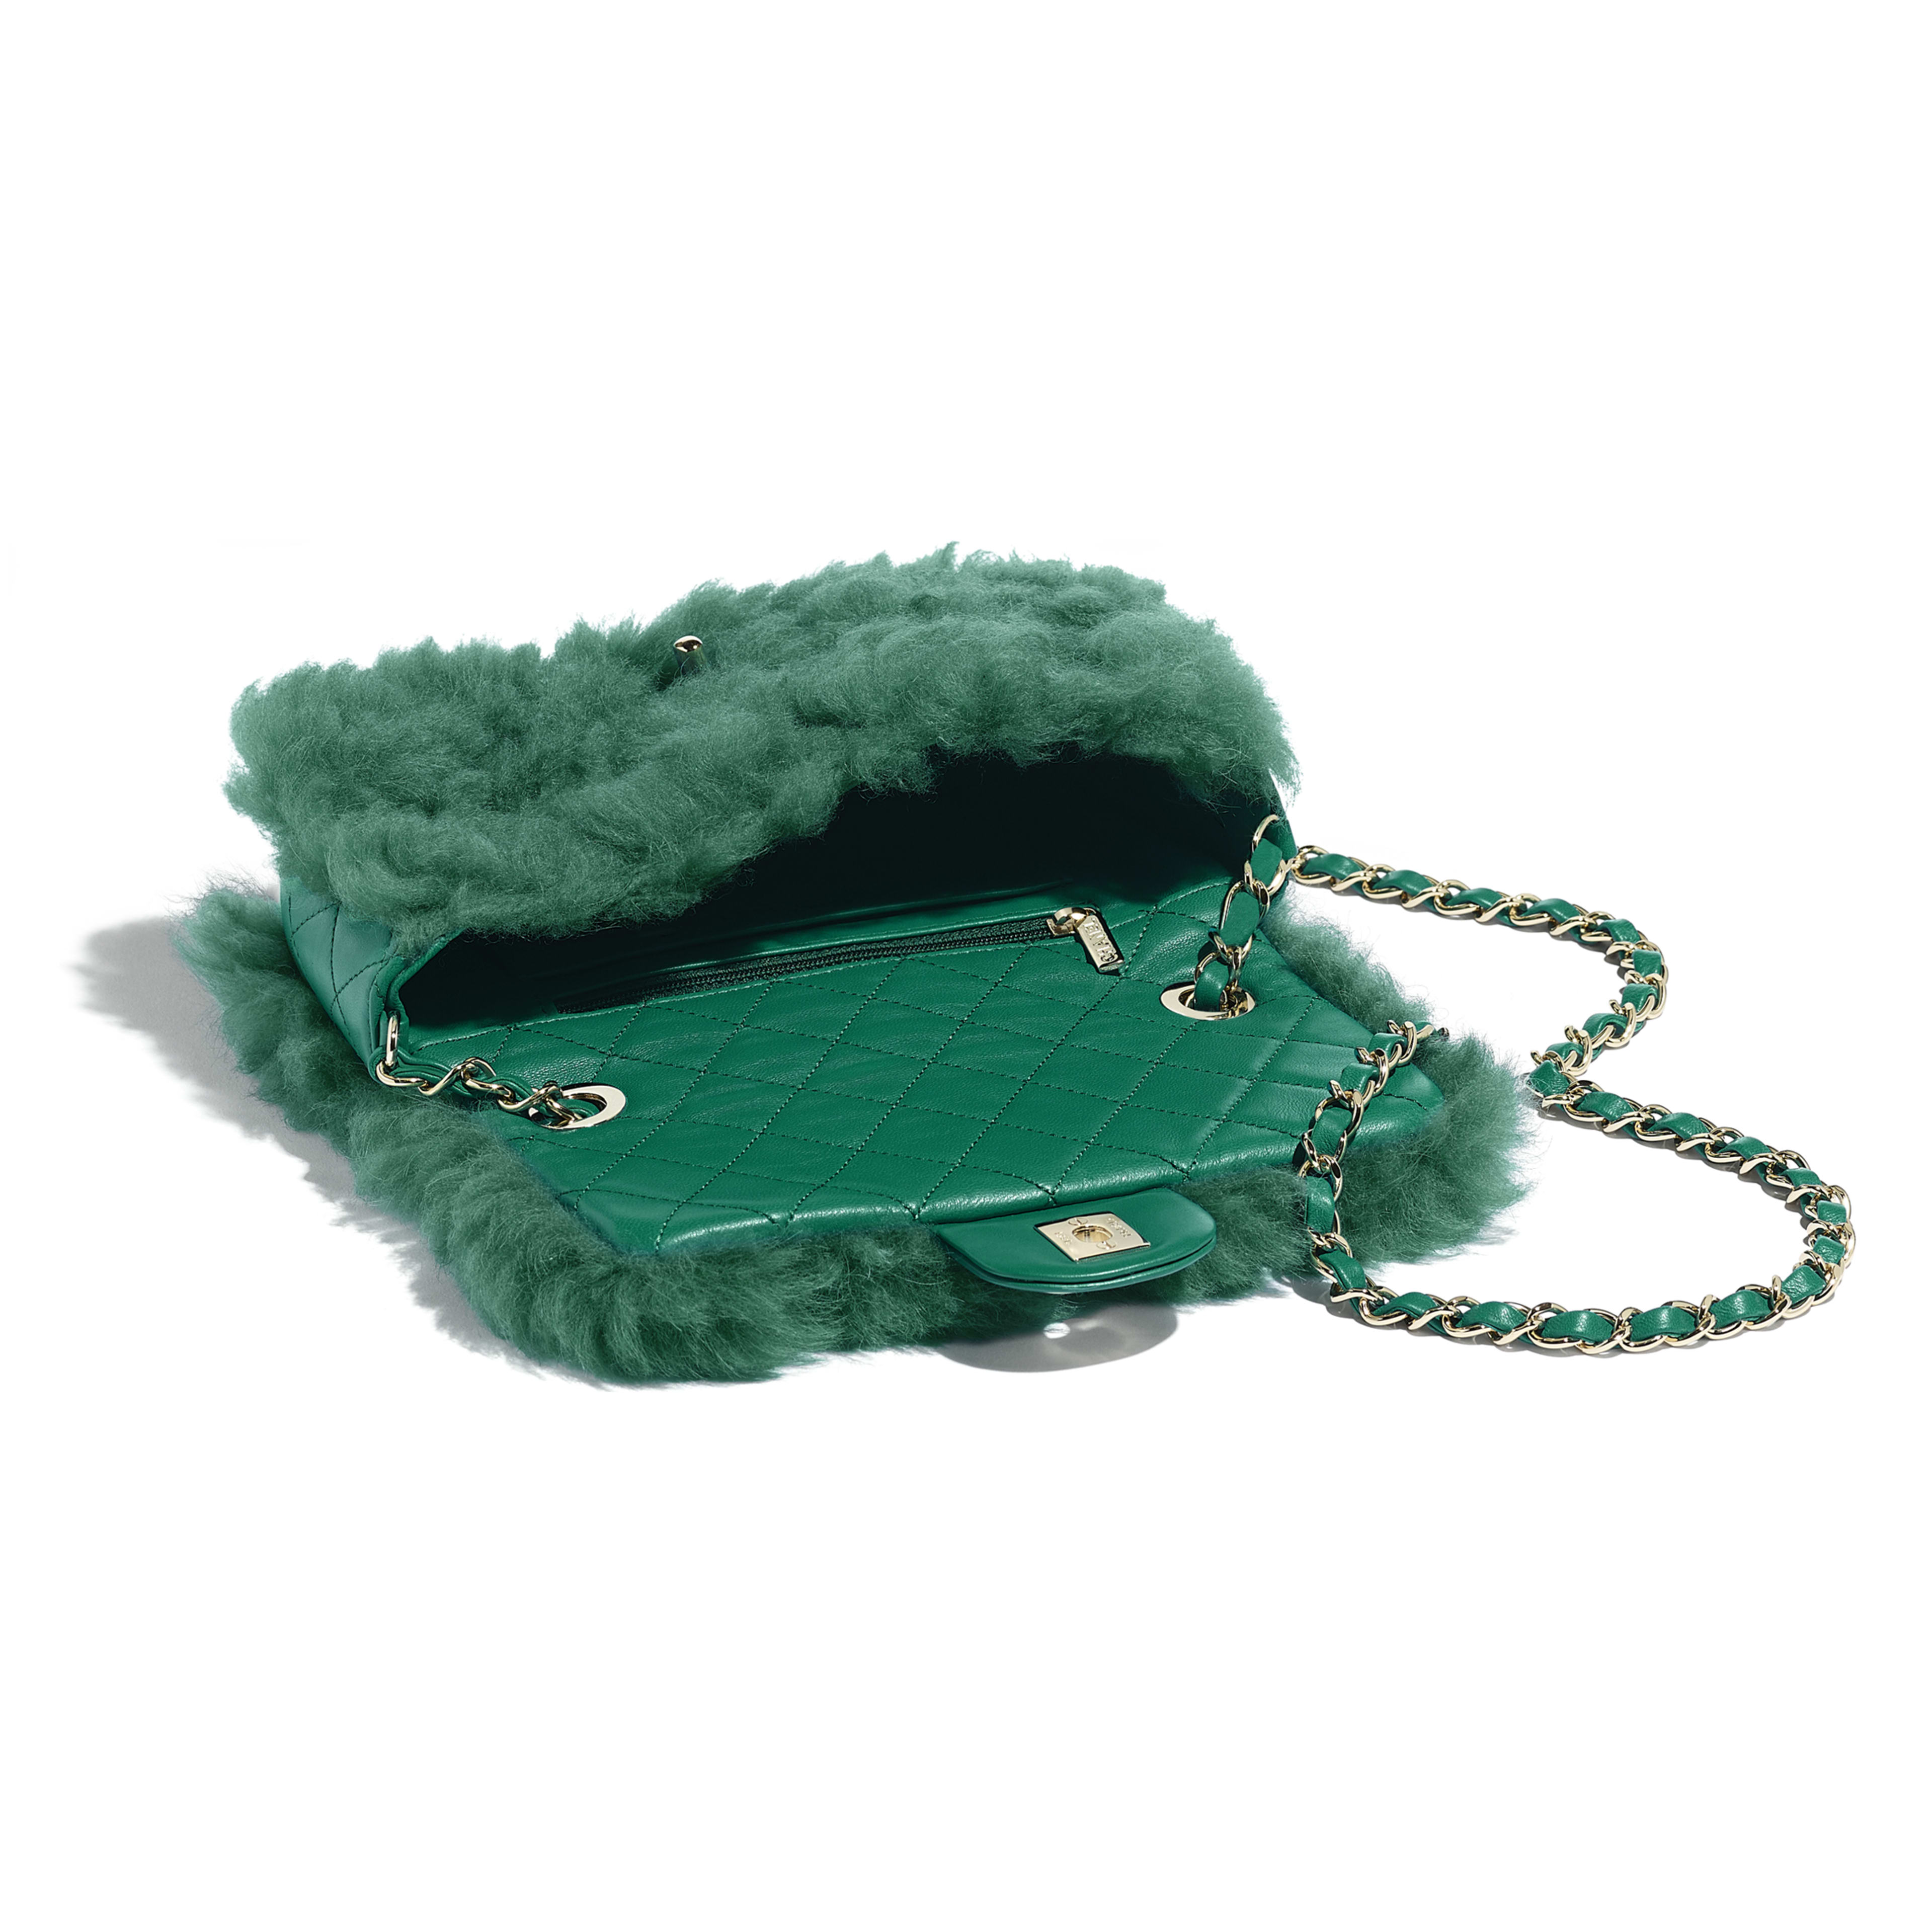 Flap Bag - Green - Shearling Lambskin, Lambskin &Gold-Tone Metal - Other view - see full sized version